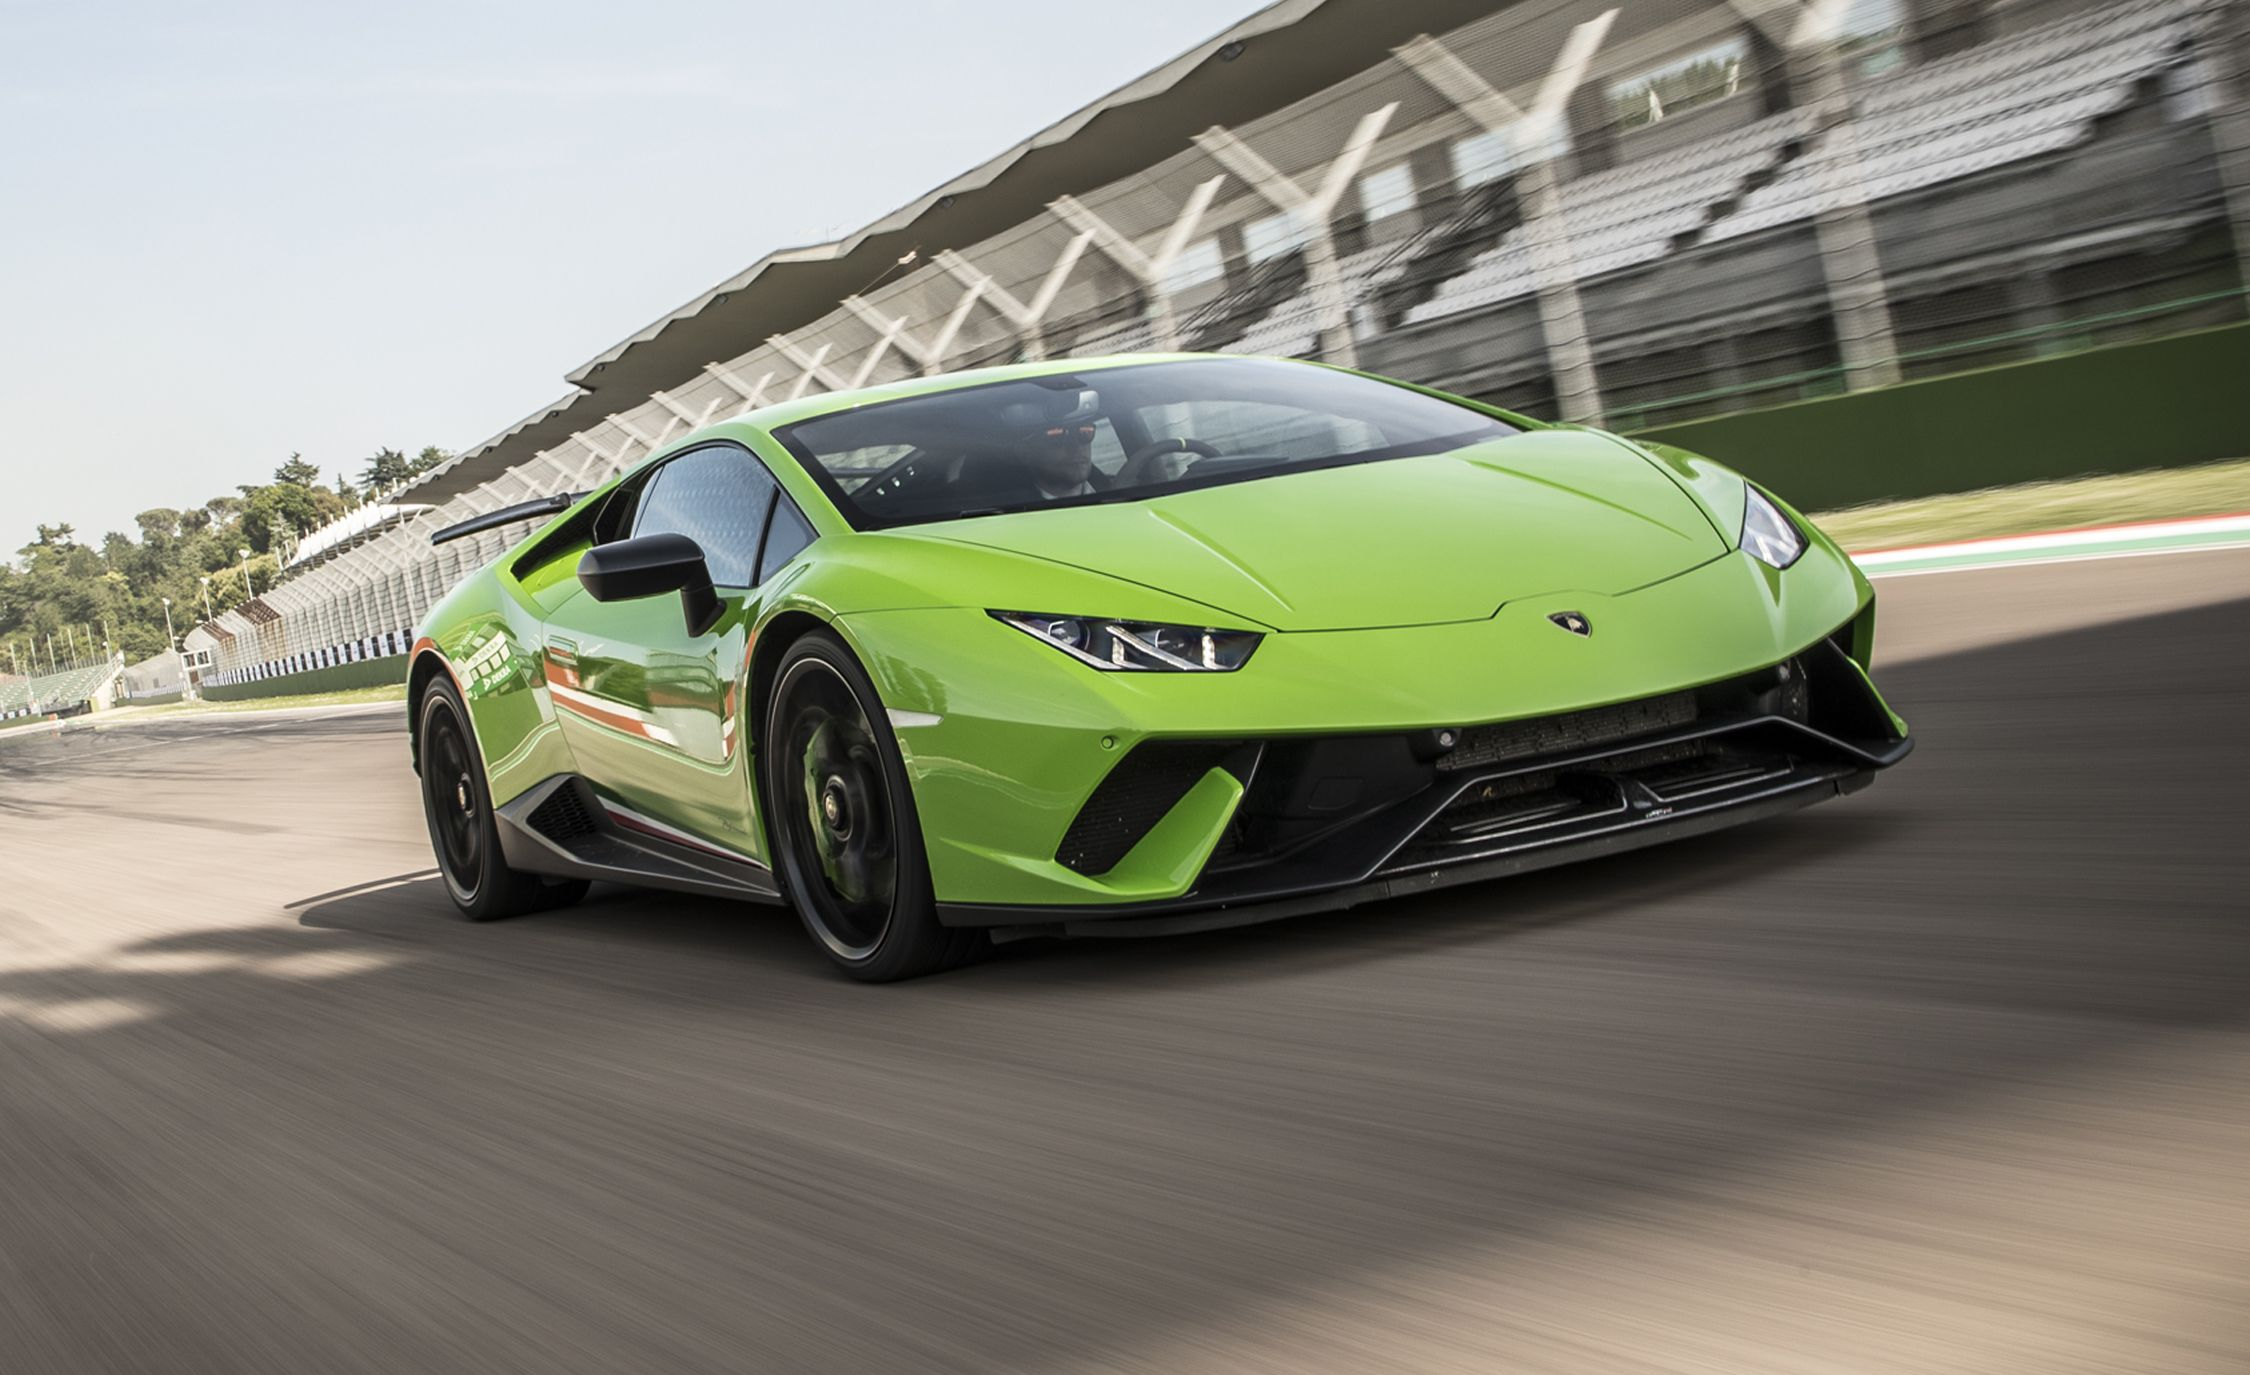 2018-lamborghini-huracan-performante-first-drive-review-car-and-driver-photo-682486-s-original Fabulous Lamborghini Huracan Need for Speed 2015 Cars Trend